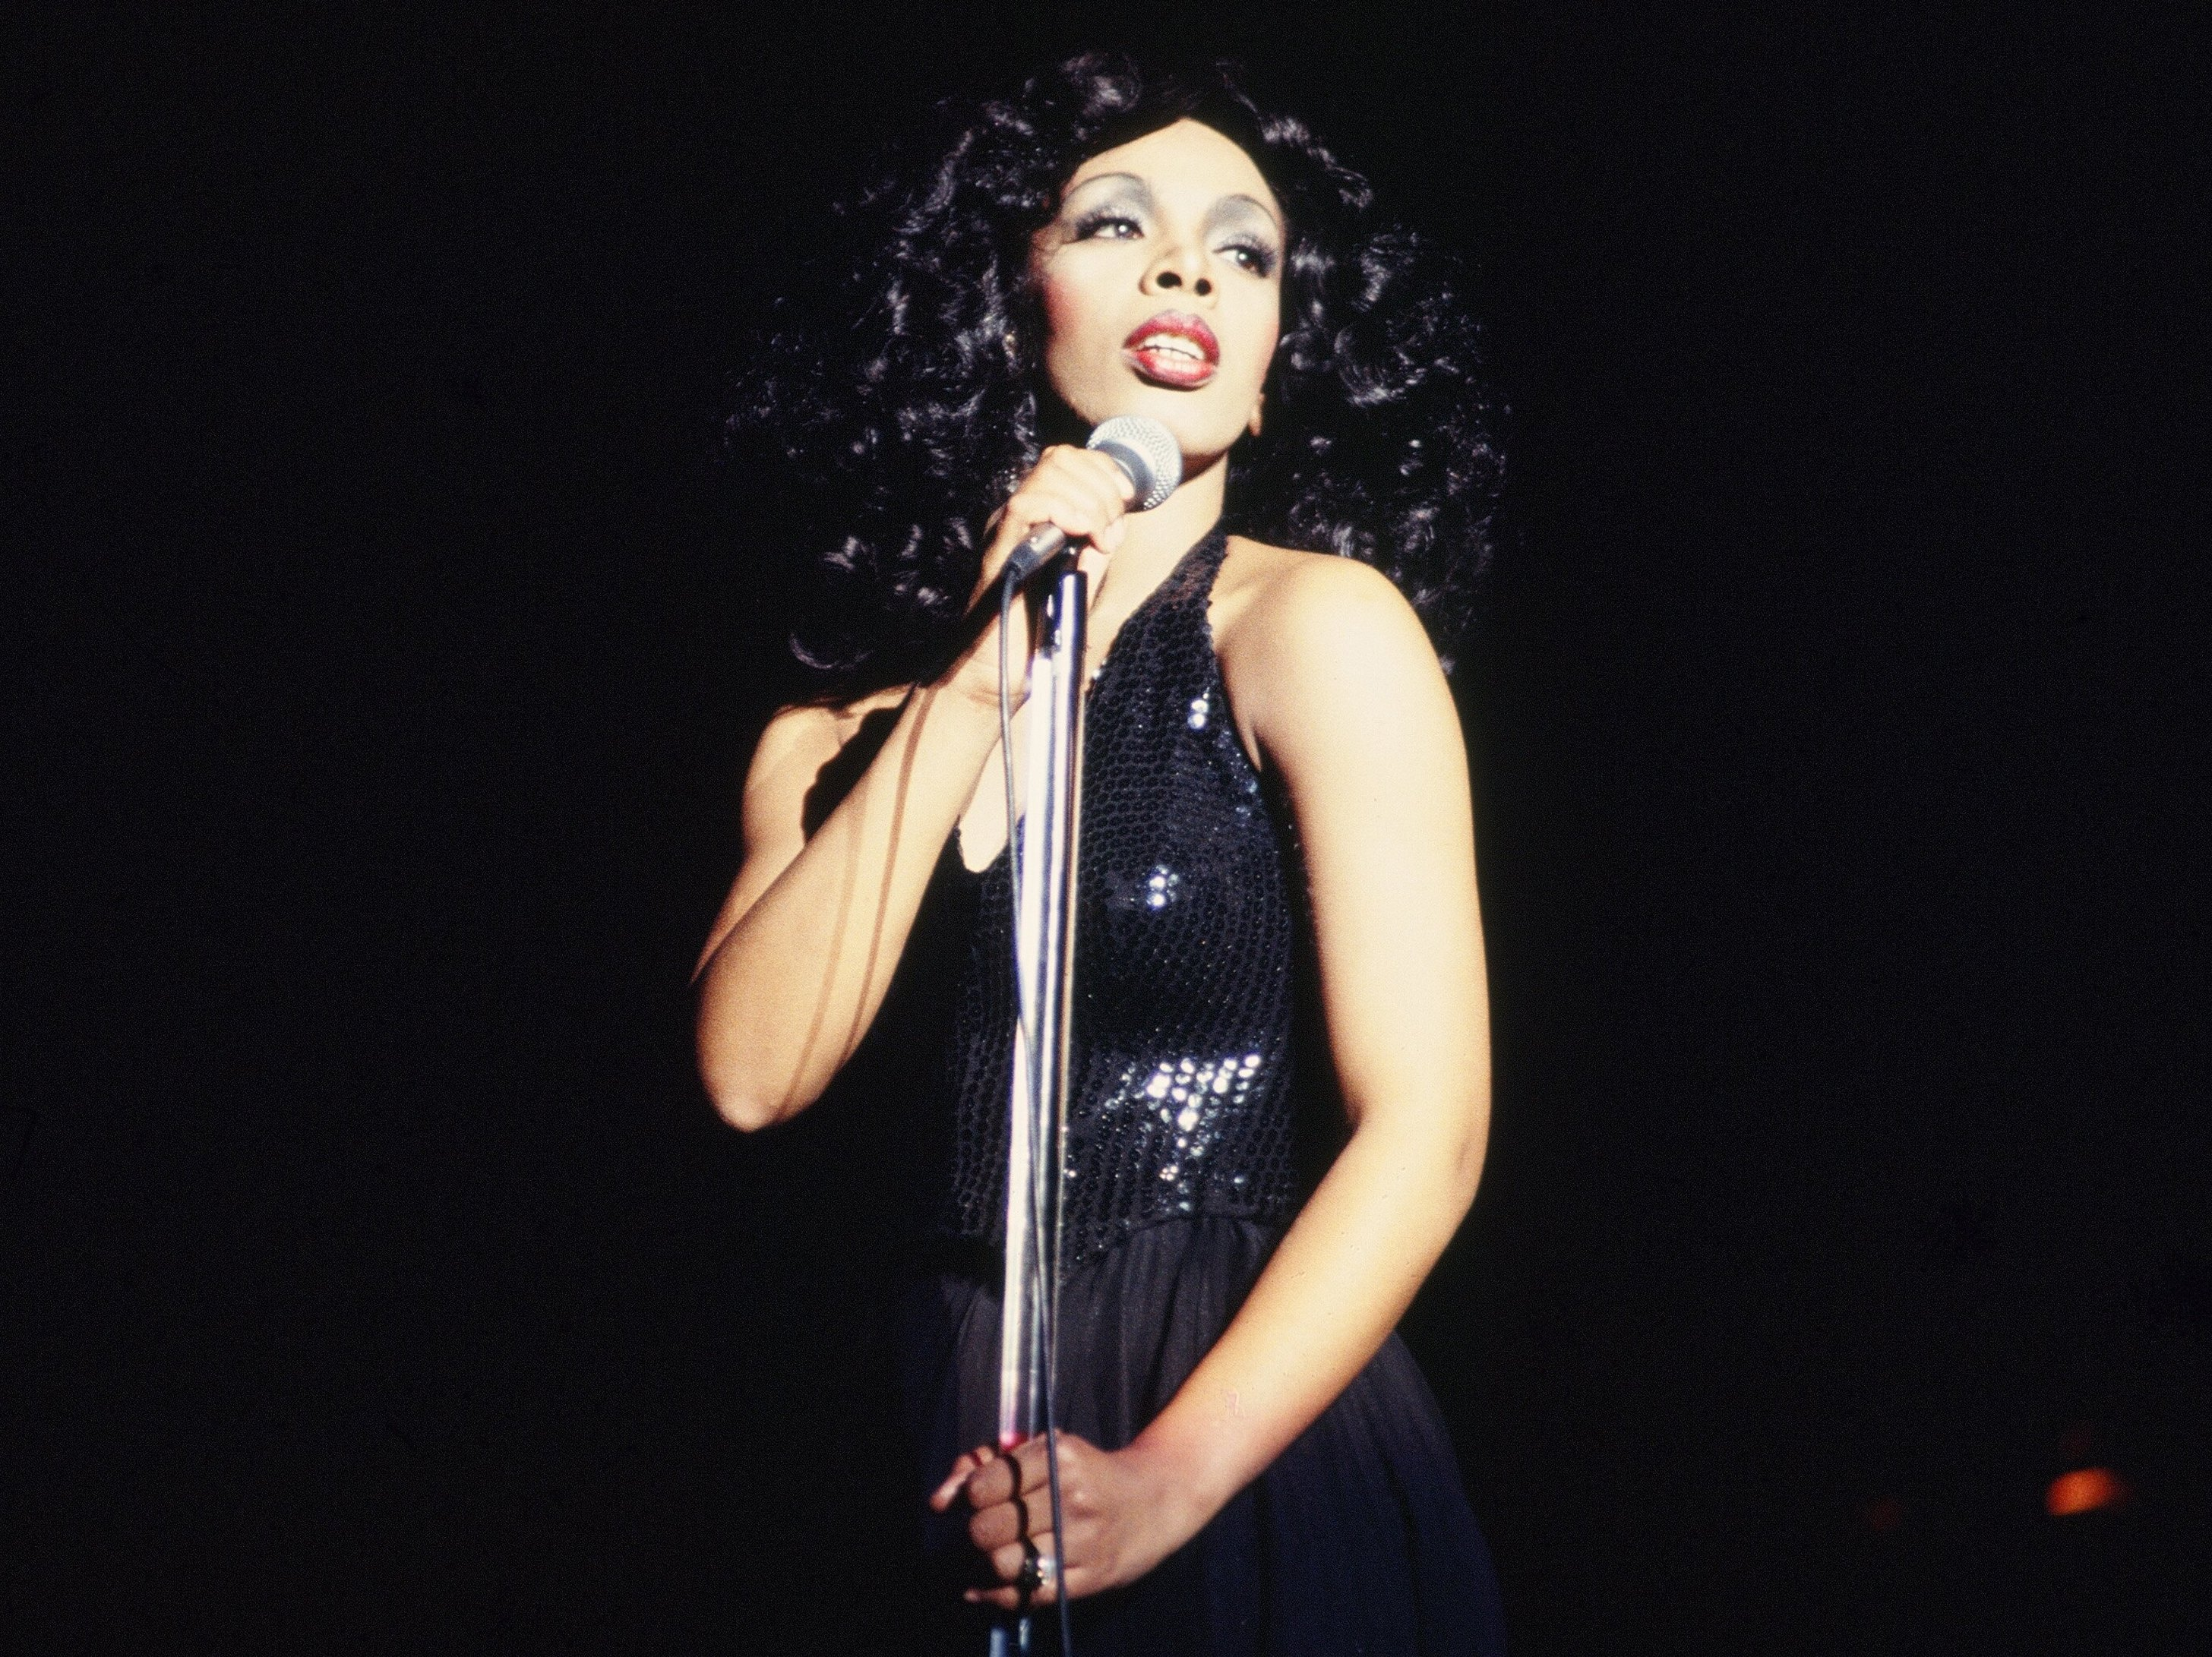 'Queen of Disco' Donna Summer performs onstage at the Civic Center on March 26, 1978 in Atlanta, Georgia.